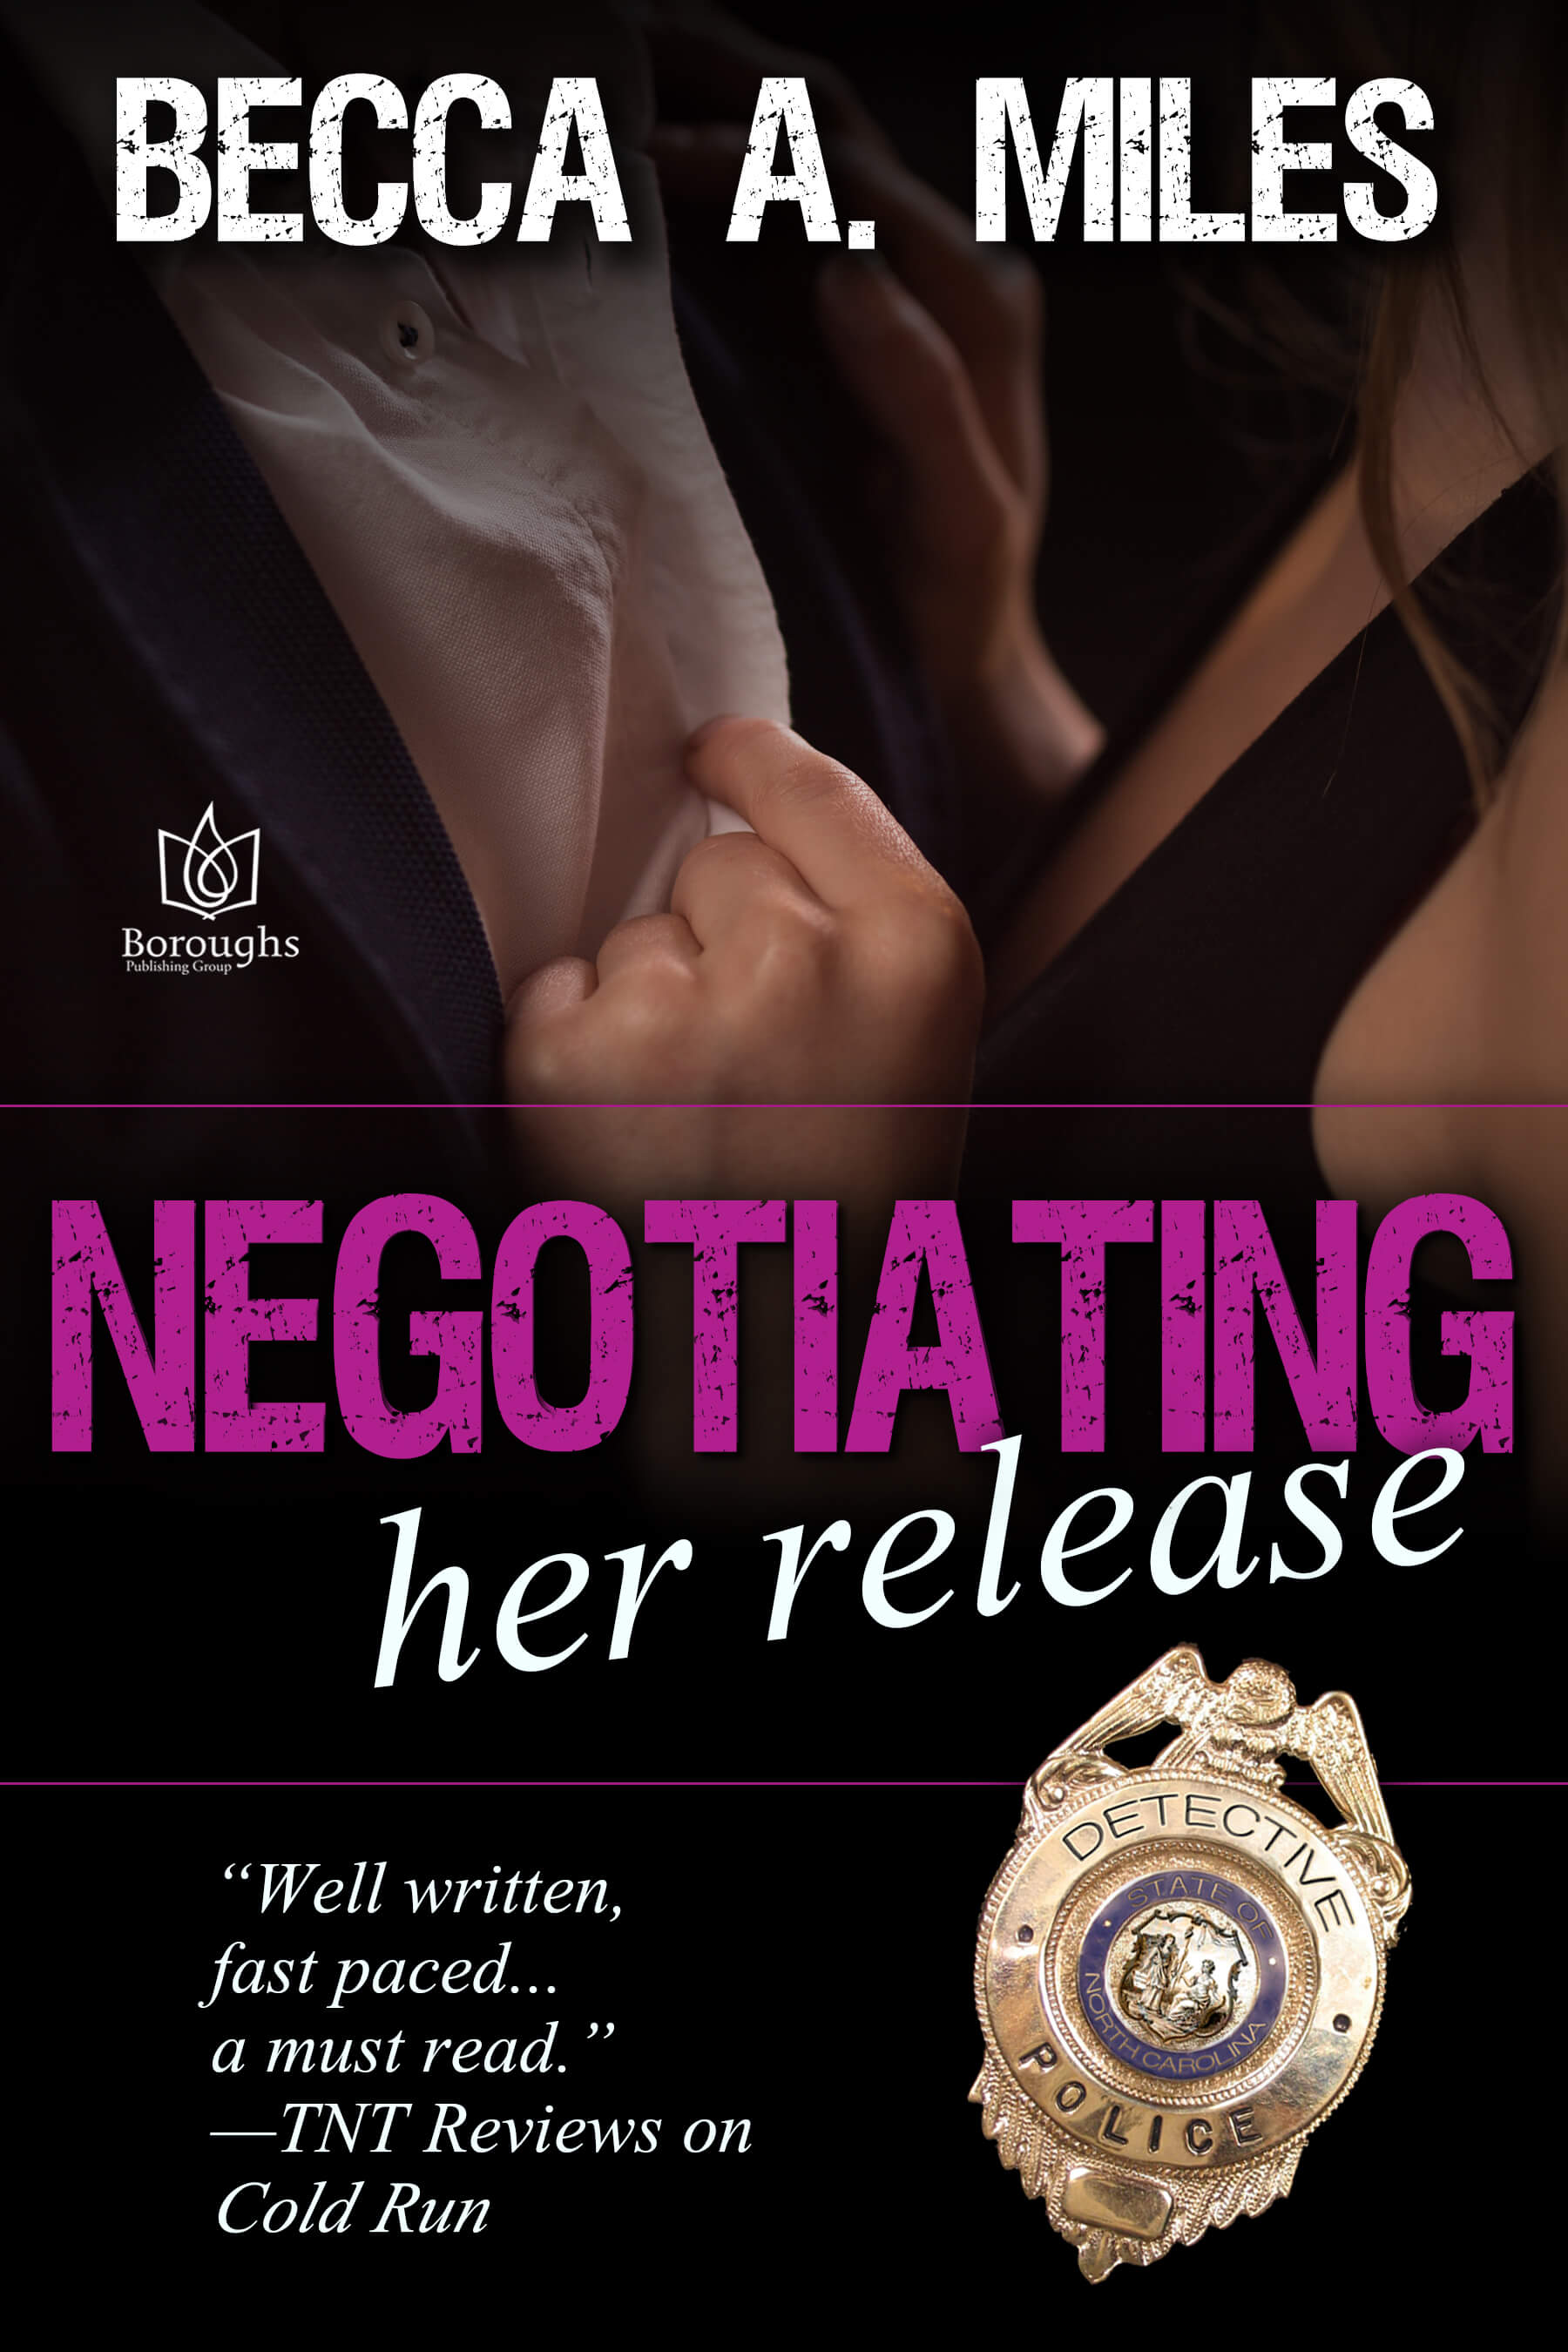 Negotiating Her Release by #BeccaMiles #authorlove #boroughspubgrp